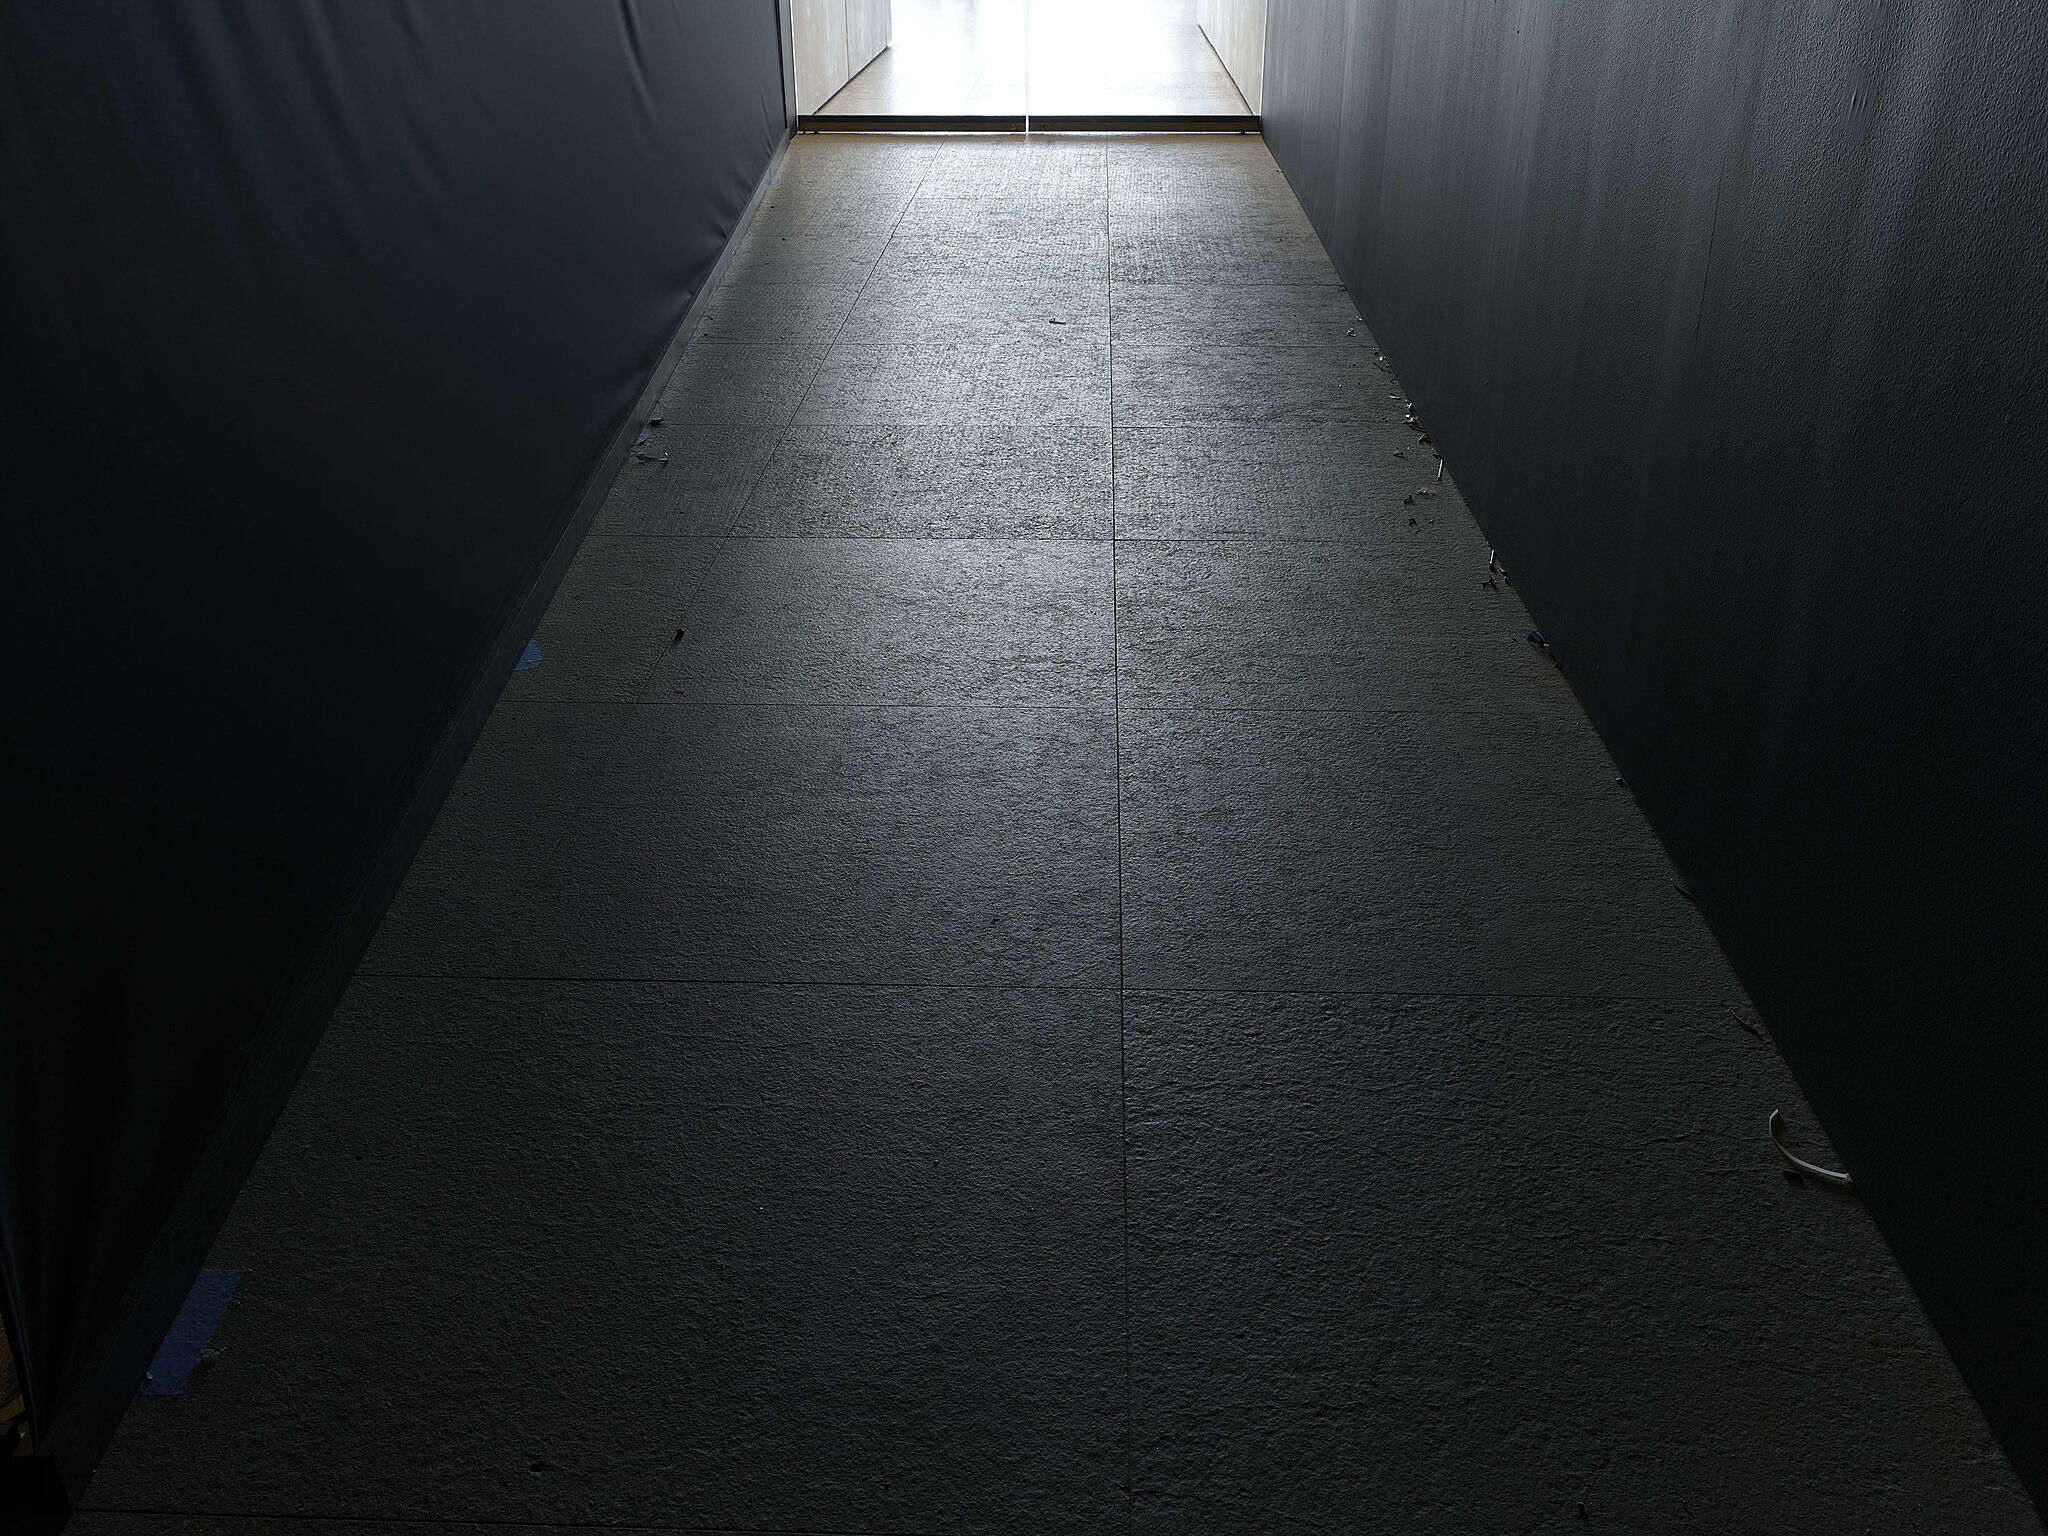 A dark hallway with visual debris.